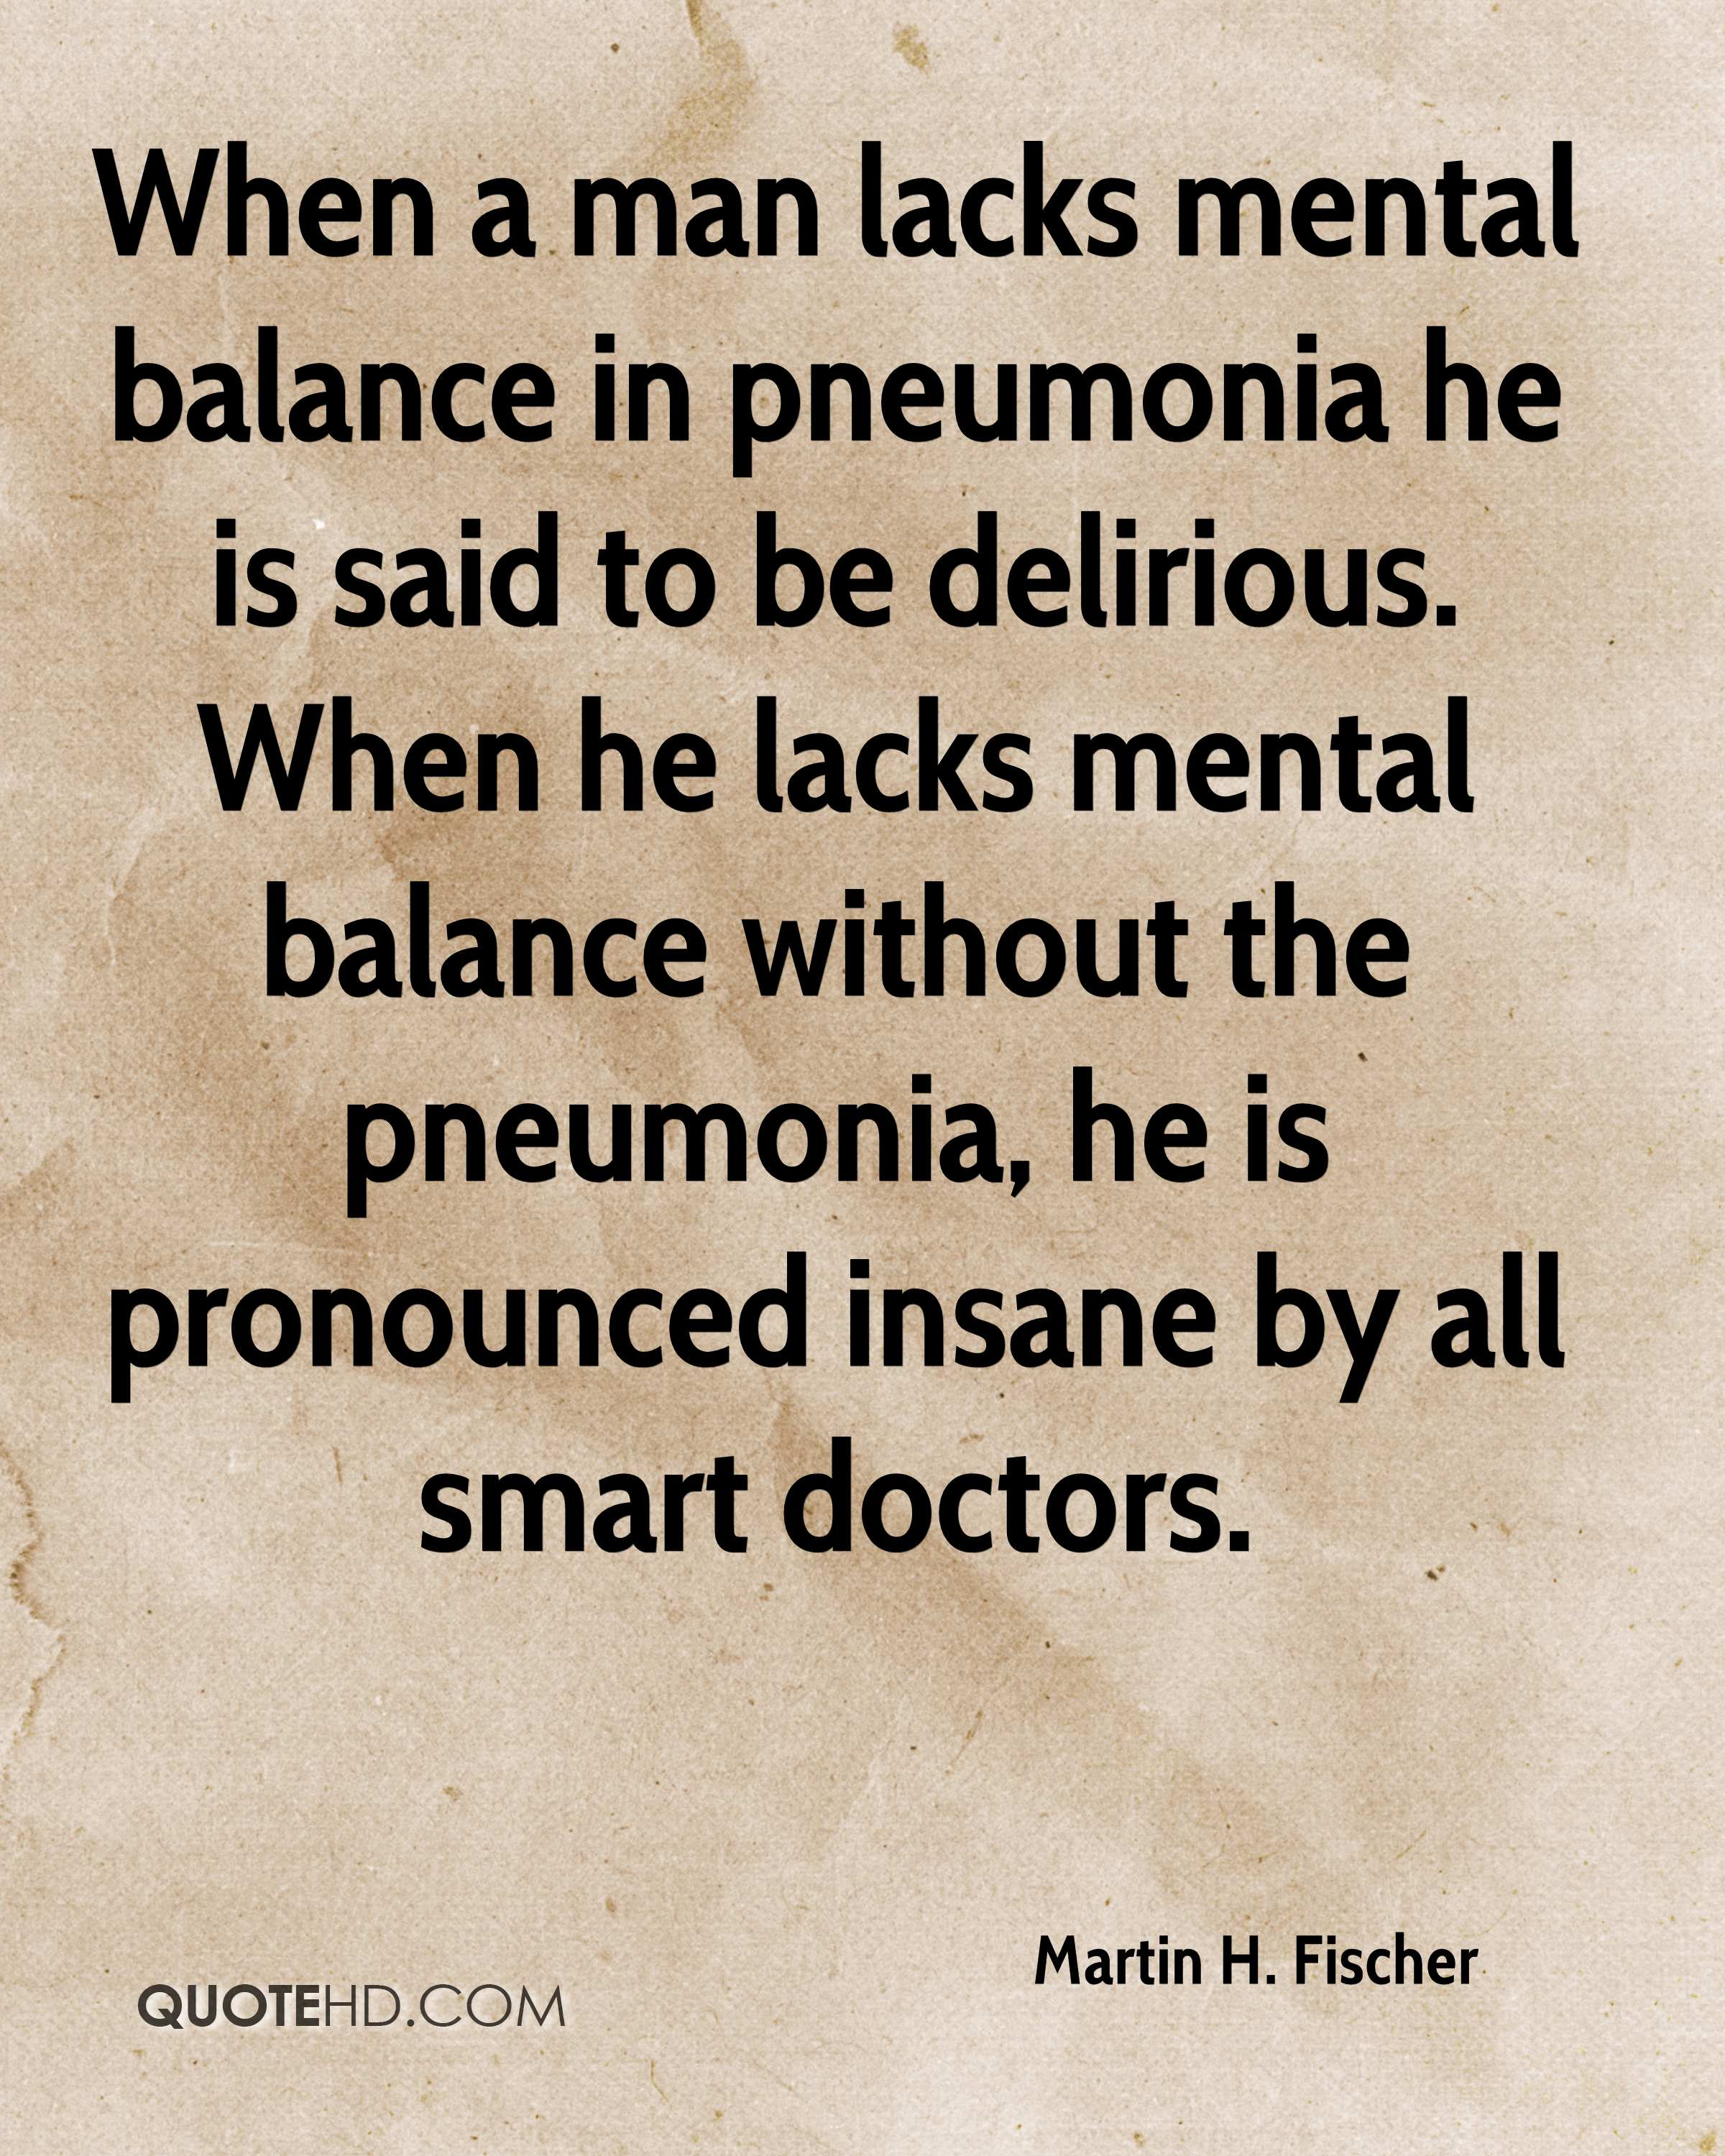 When a man lacks mental balance in pneumonia he is said to be delirious. When he lacks mental balance without the pneumonia, he is pronounced insane by all smart doctors.